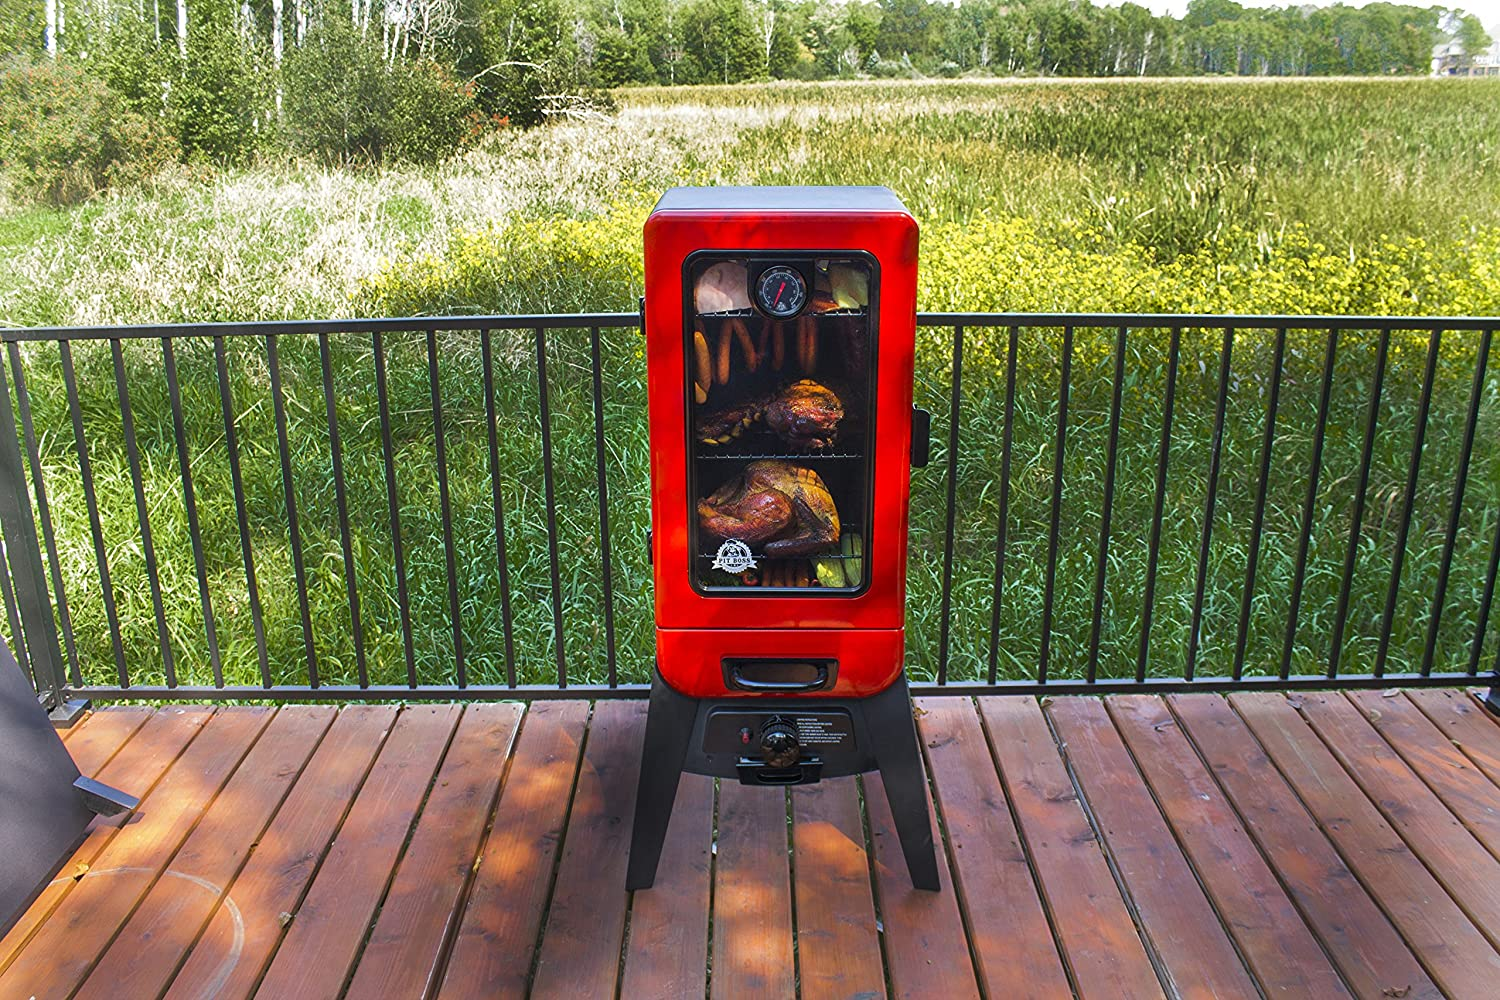 Top 5 Pit Boss Grills (Dec  2019): Reviews & Buyers Guide